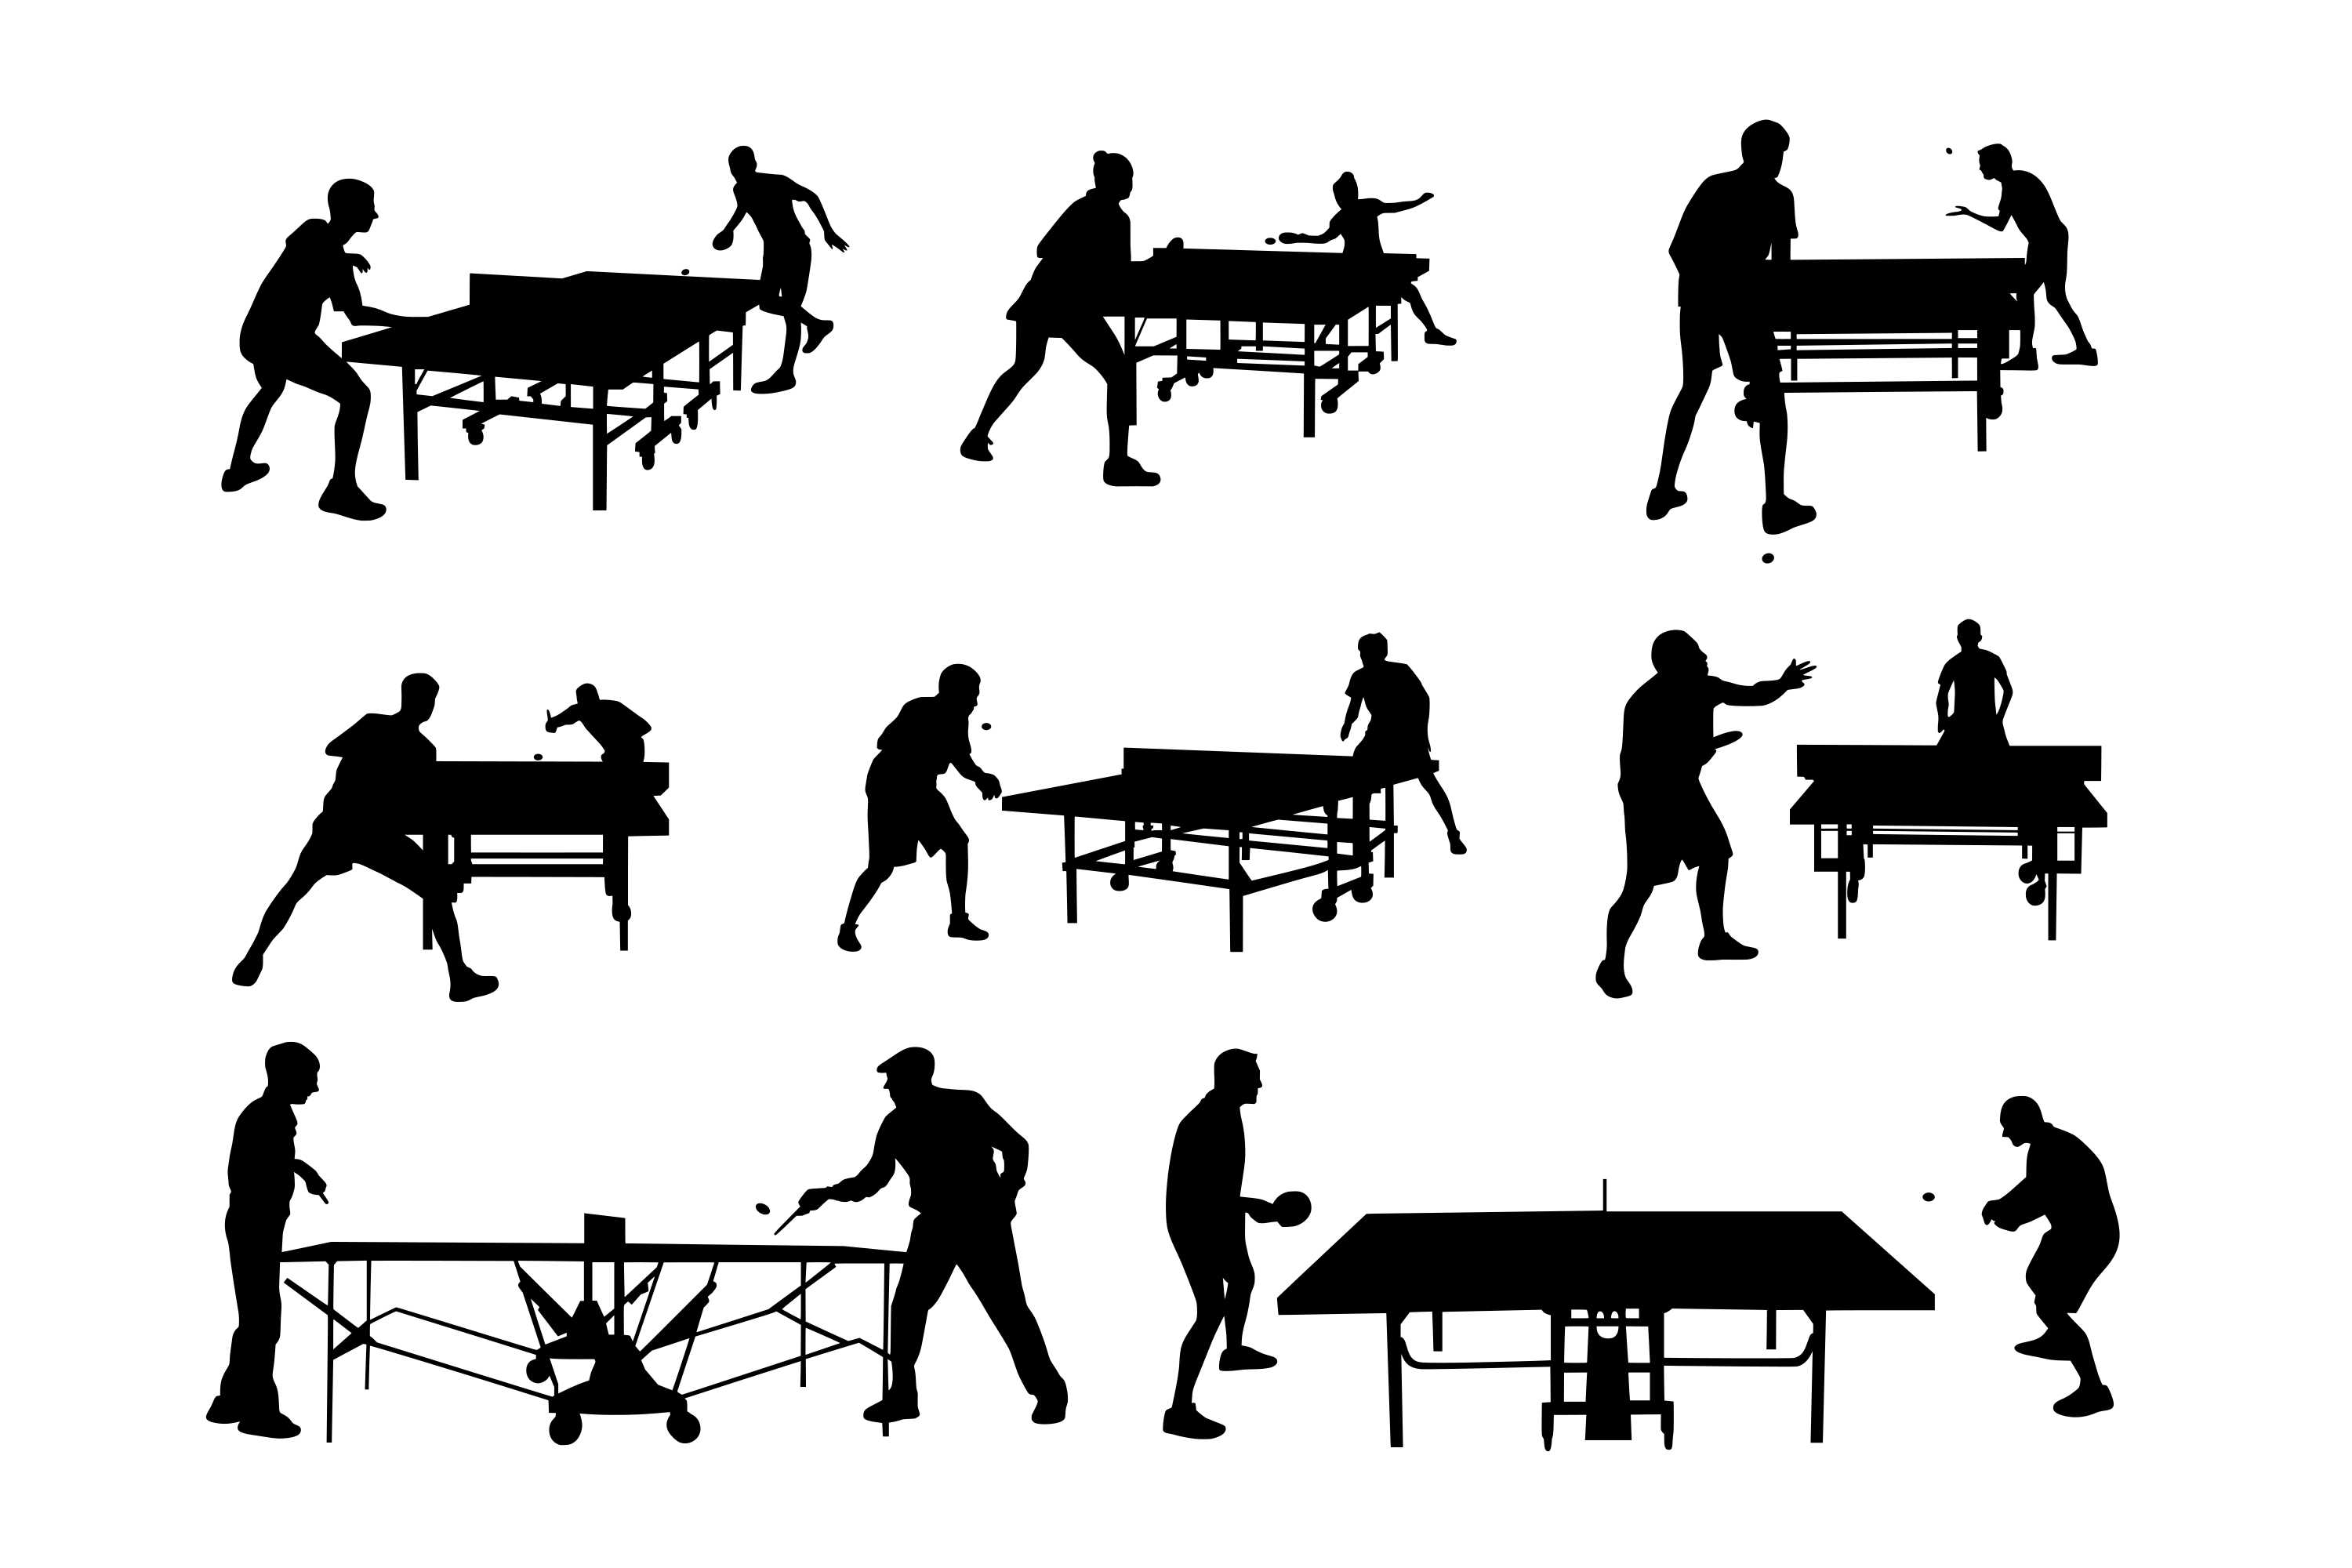 8-ping-pong-silhouette-cover.jpg